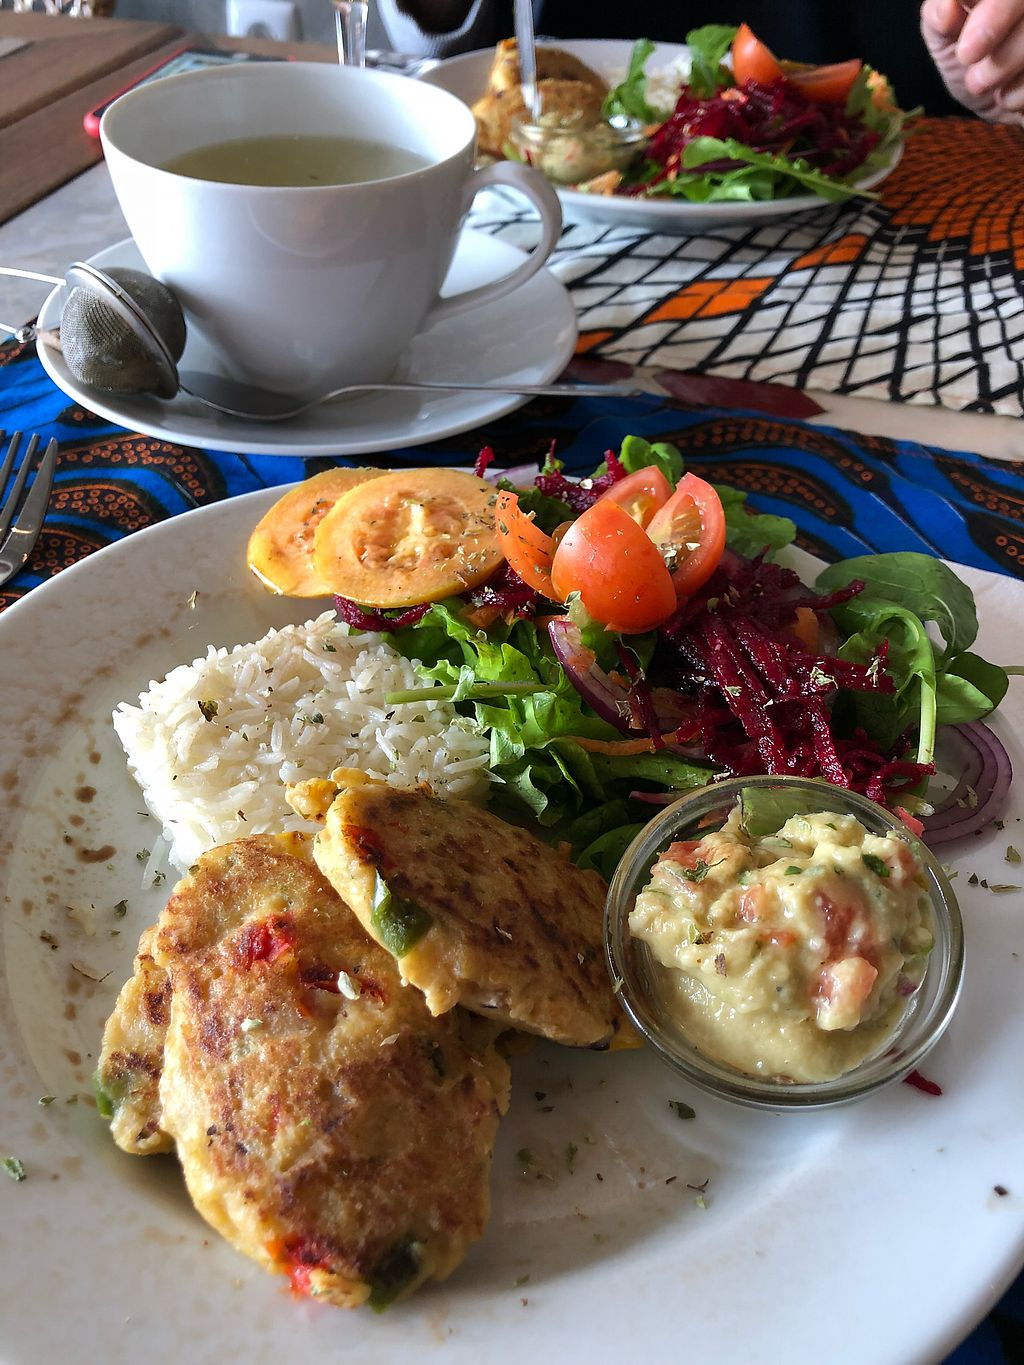 "Photo of Bistro 'O Porto  by <a href=""/members/profile/Arkie"">Arkie</a> <br/>Main dish. Chickpea blinis with guacamole, rice and sallad <br/> December 28, 2017  - <a href='/contact/abuse/image/40673/340010'>Report</a>"